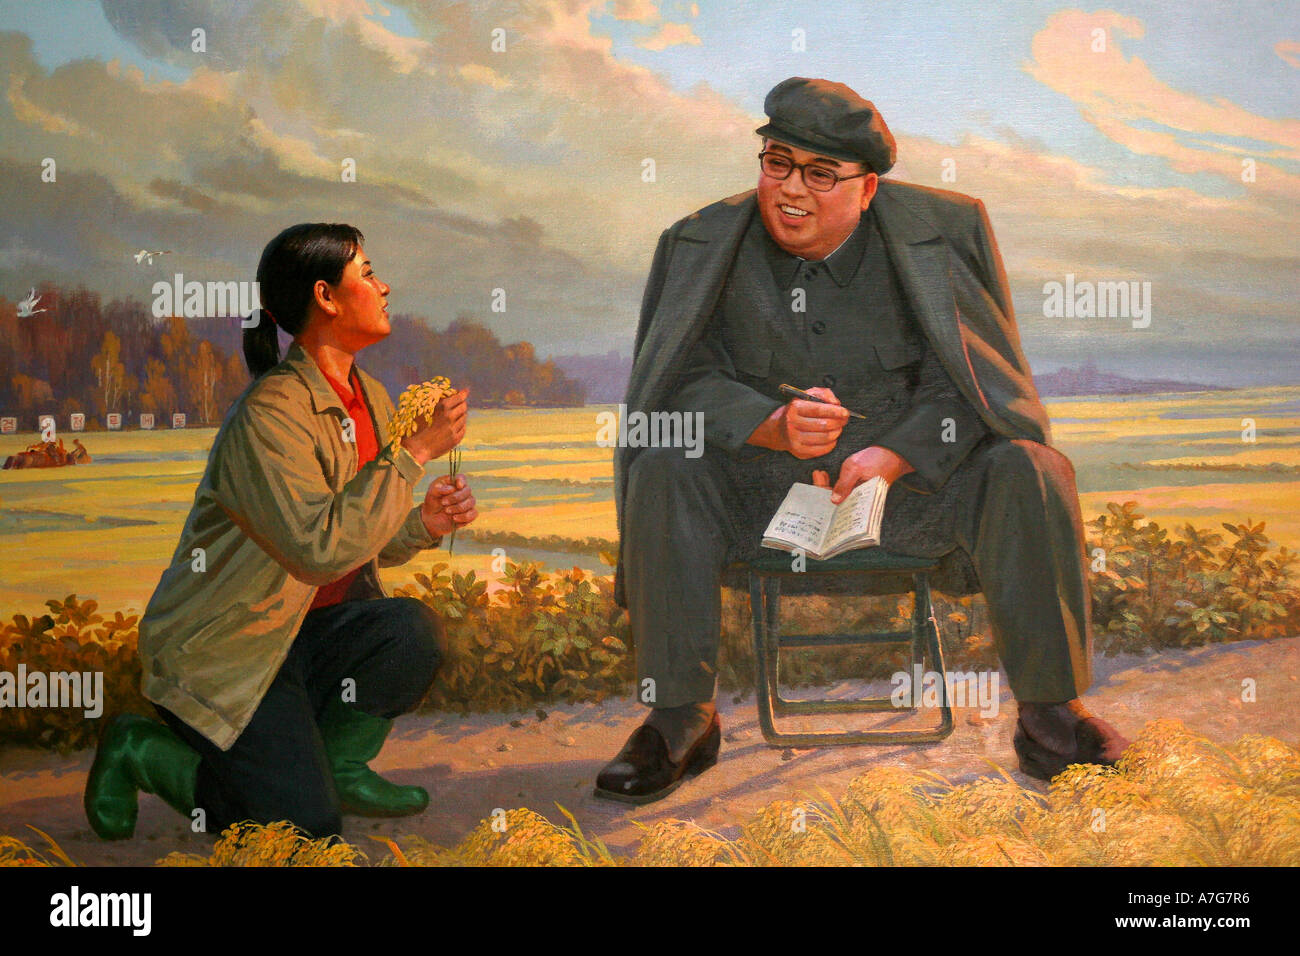 Kim Jong Il: Revered at home; remembered outside as repressive - CNN